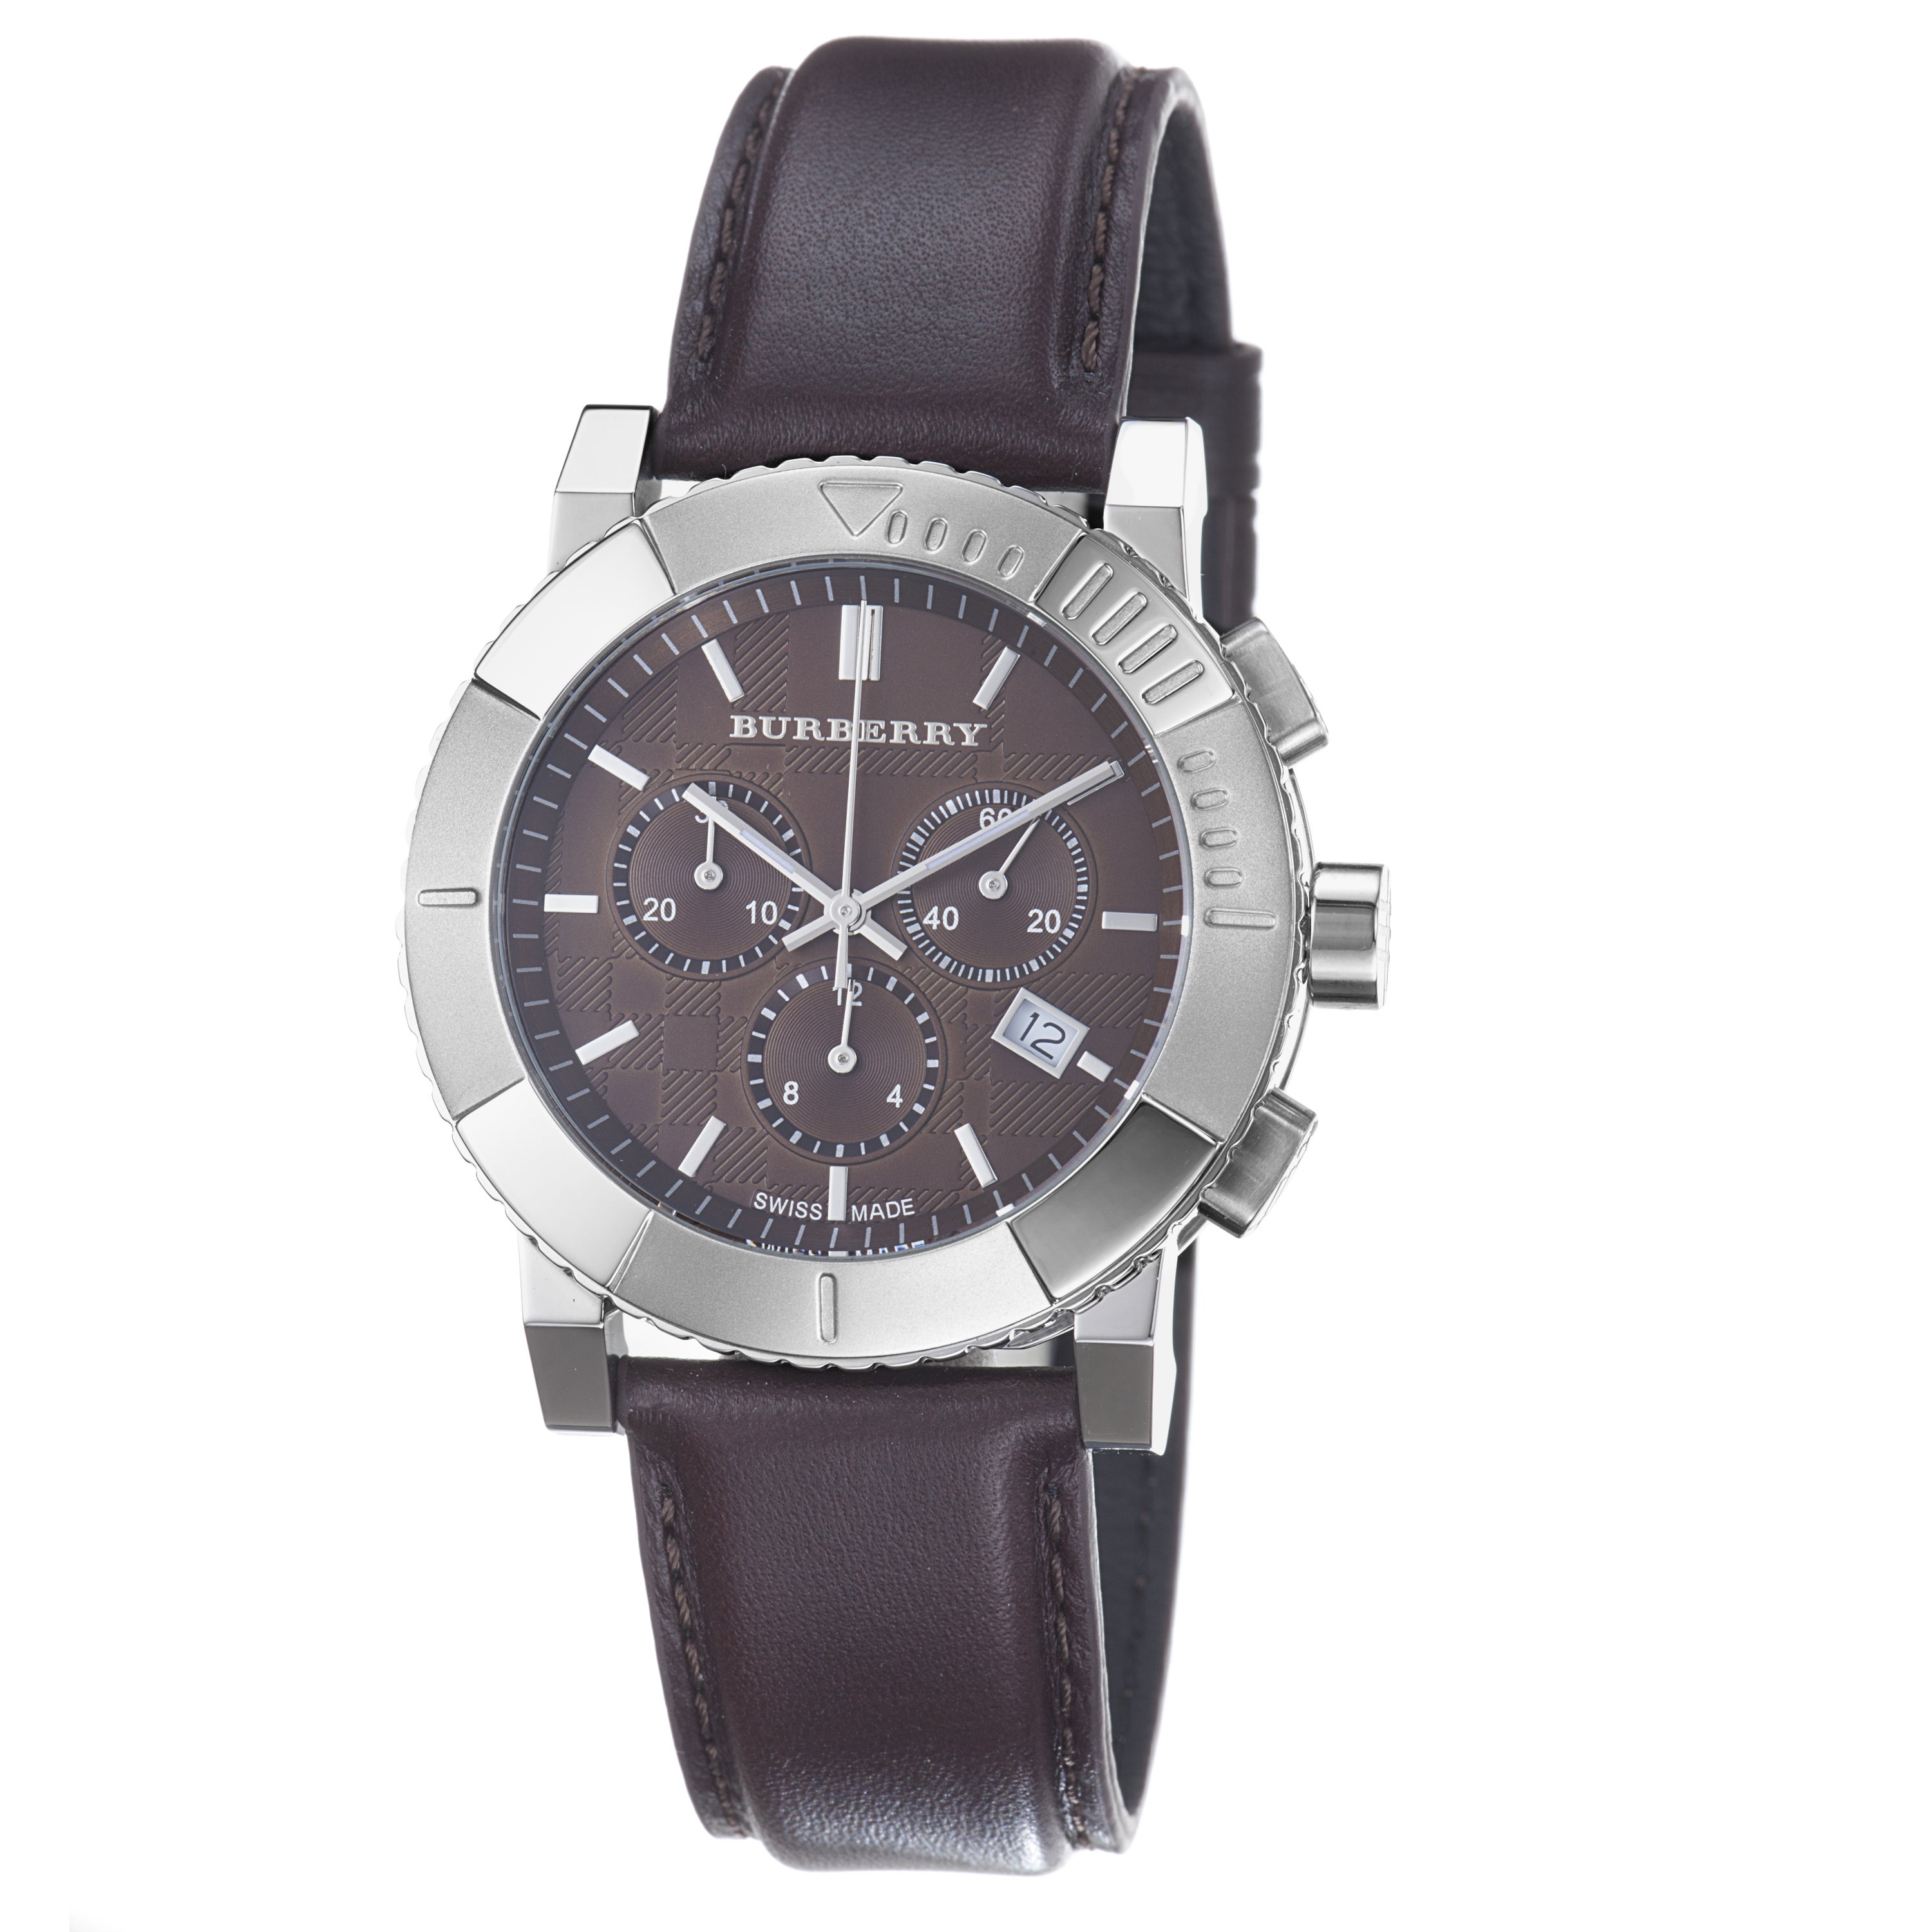 410189f0a4fb Shop Burberry Men's 'Round Chorno' Brown Dial Brown Leather Strap Watch -  Free Shipping Today - Overstock - 6595926